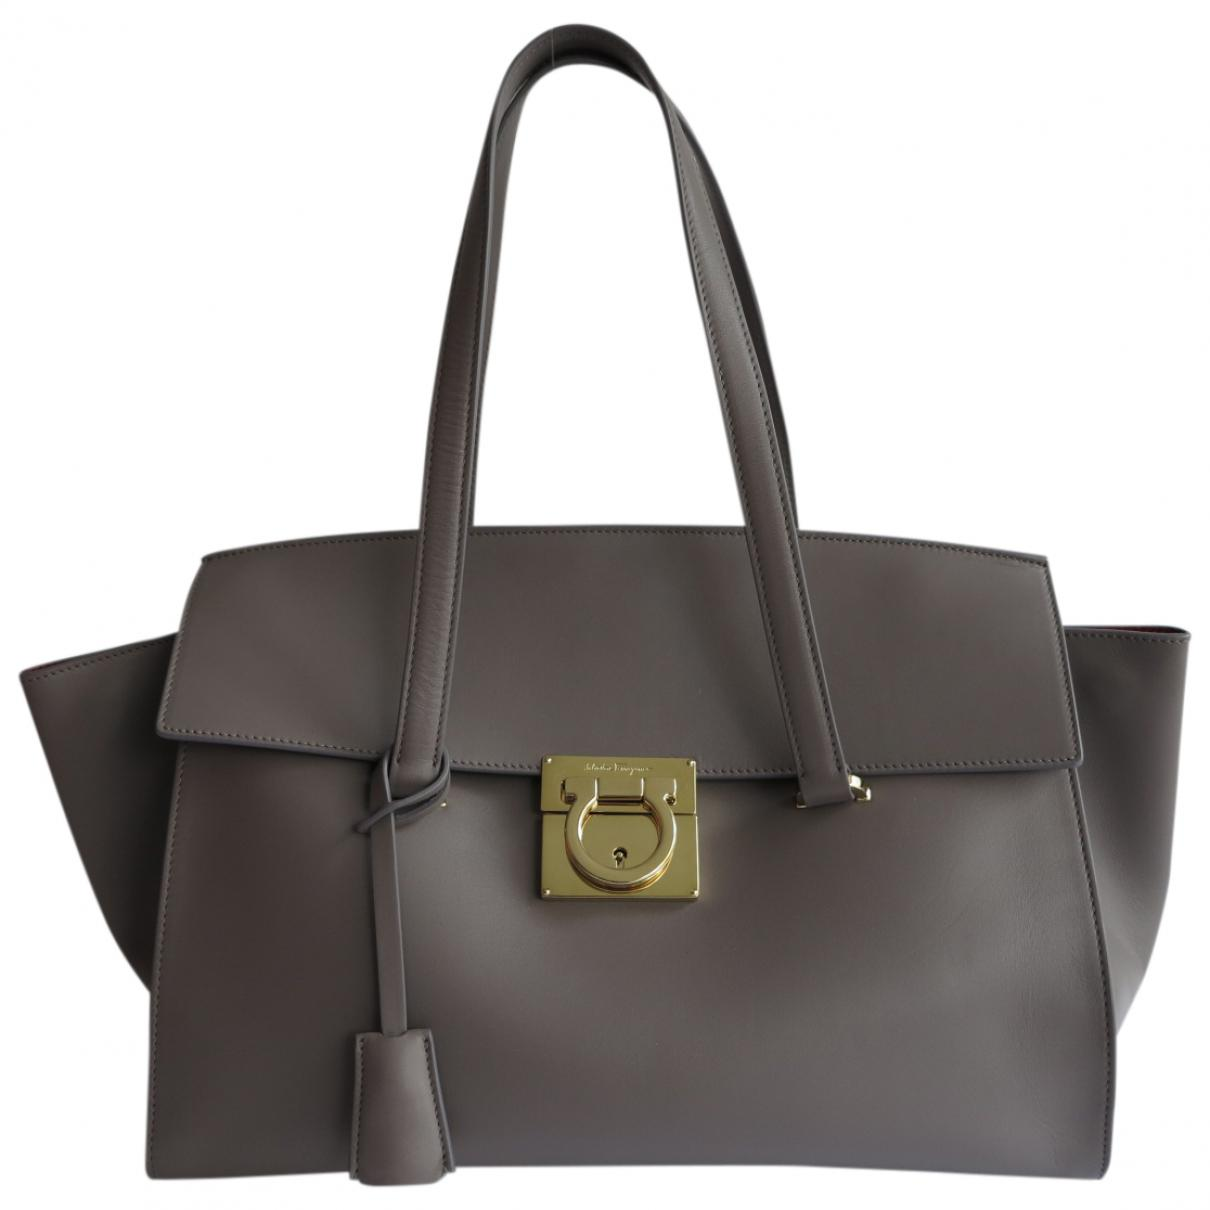 cd3faa09e98c Ferragamo Pre-owned Leather Handbag in Gray - Lyst